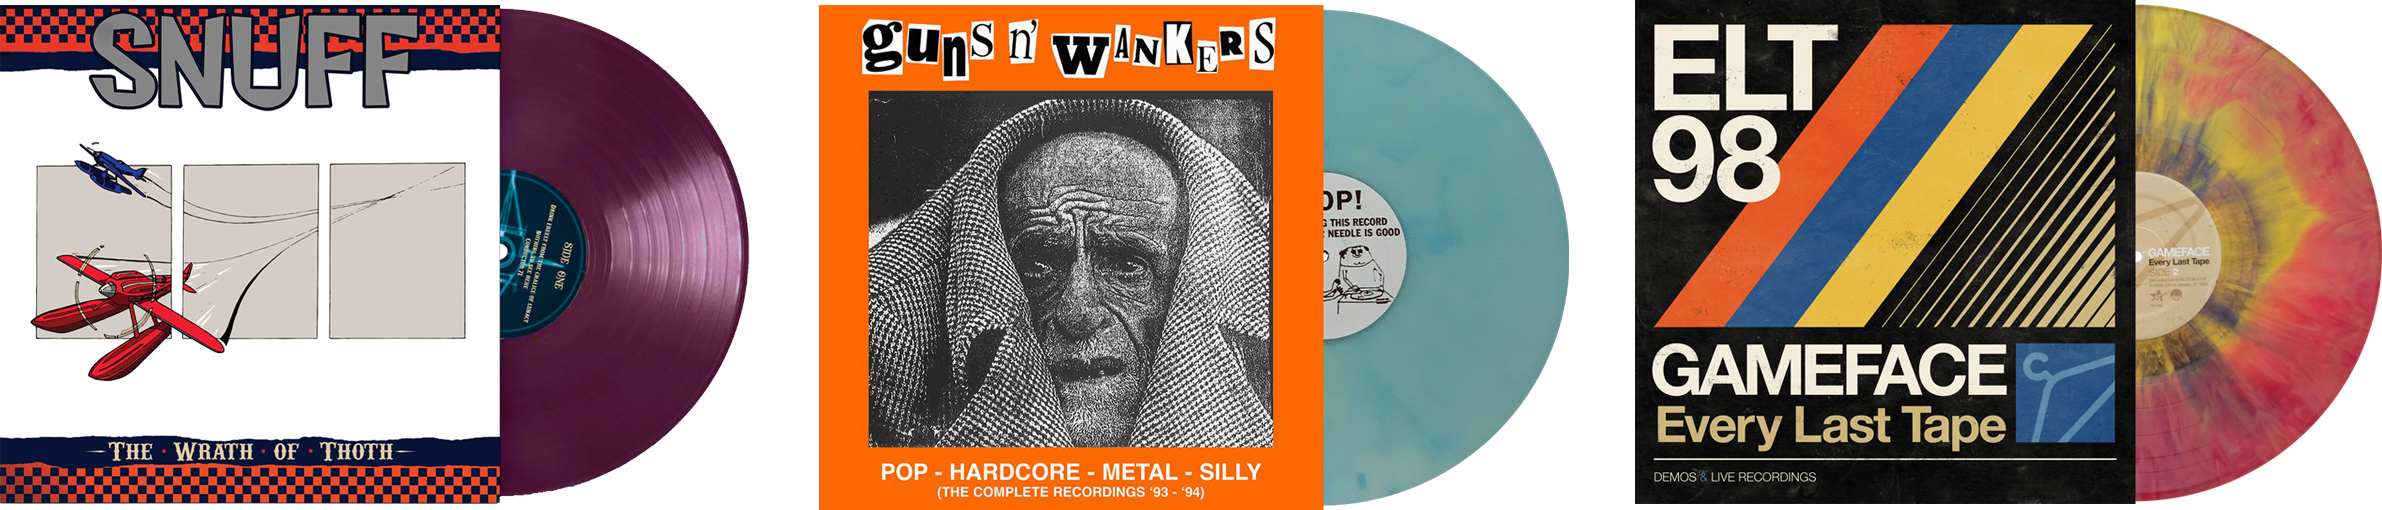 Unless_you_try_records_snuff_wrath_of_thoth_vinyl_banner